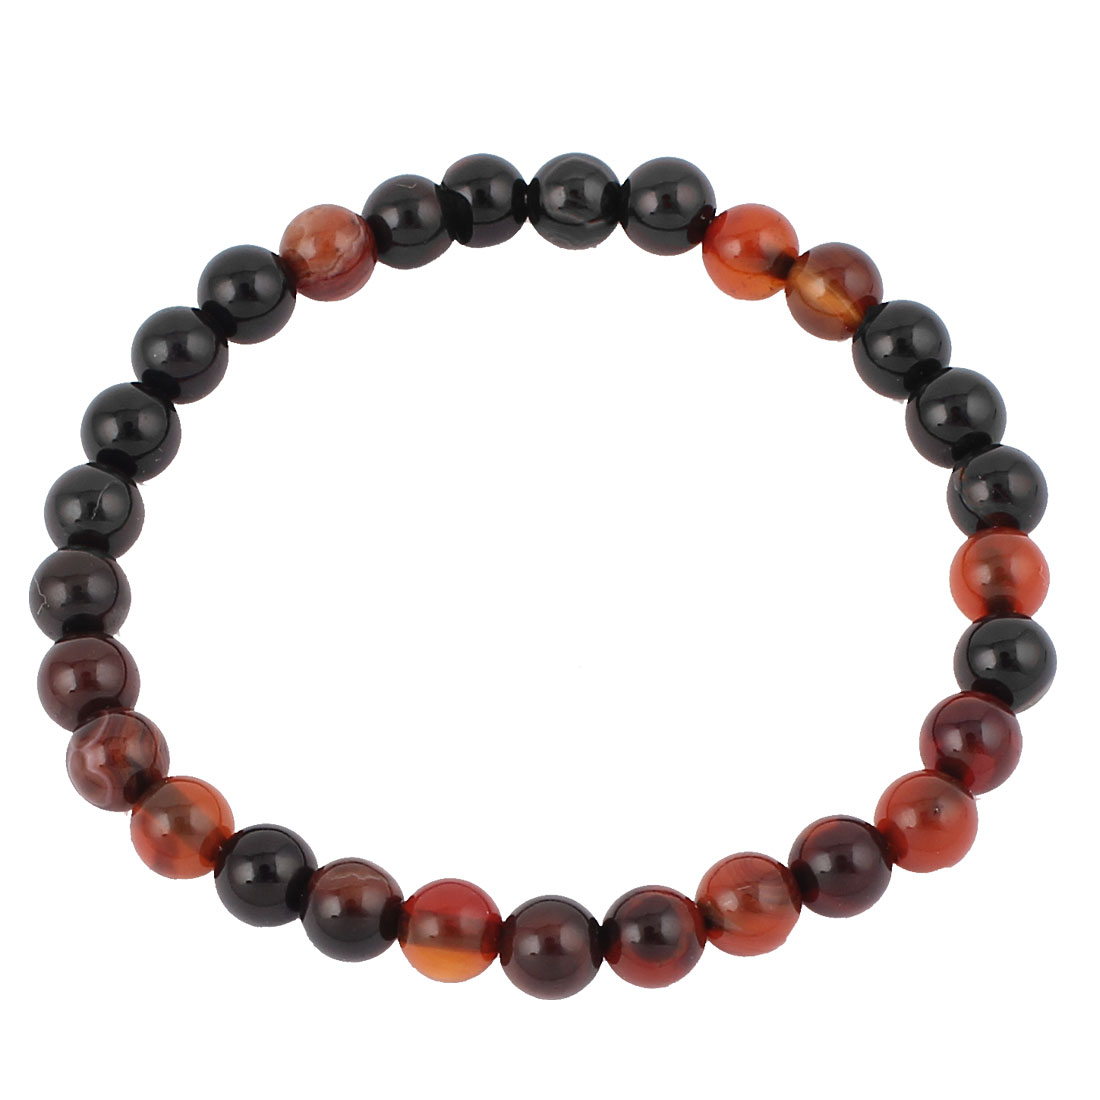 Women Jewelry Faux Jade Beads Elastic Wrist Bangle Bracelet Decor Black Brown